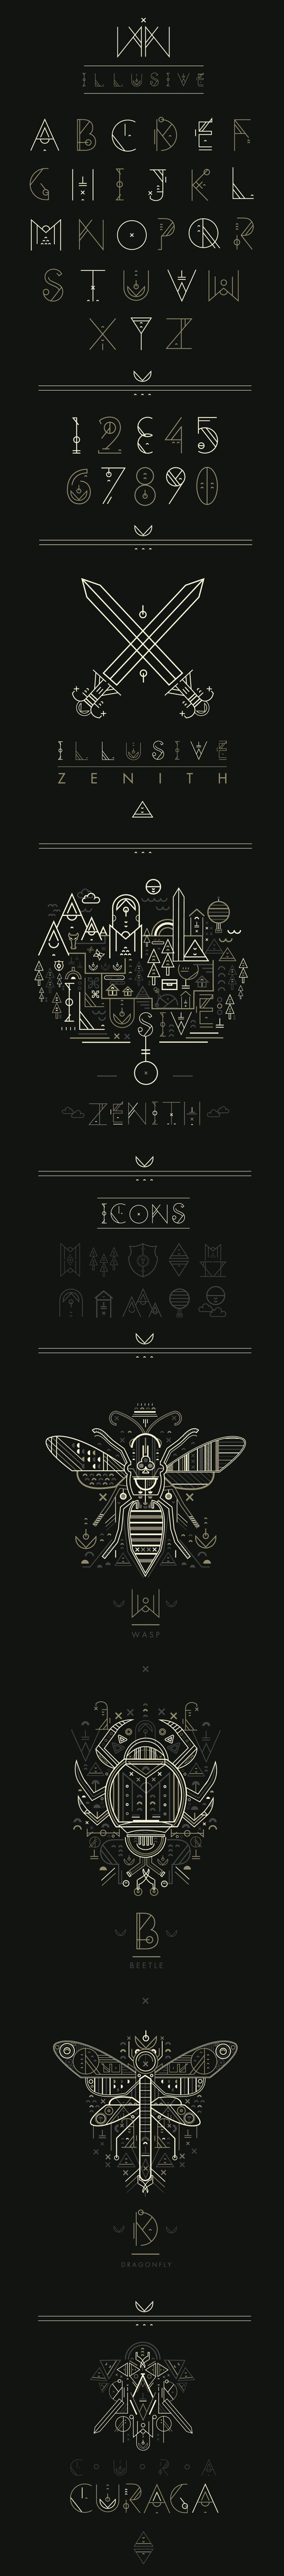 best typo images on pinterest typography letters graph design